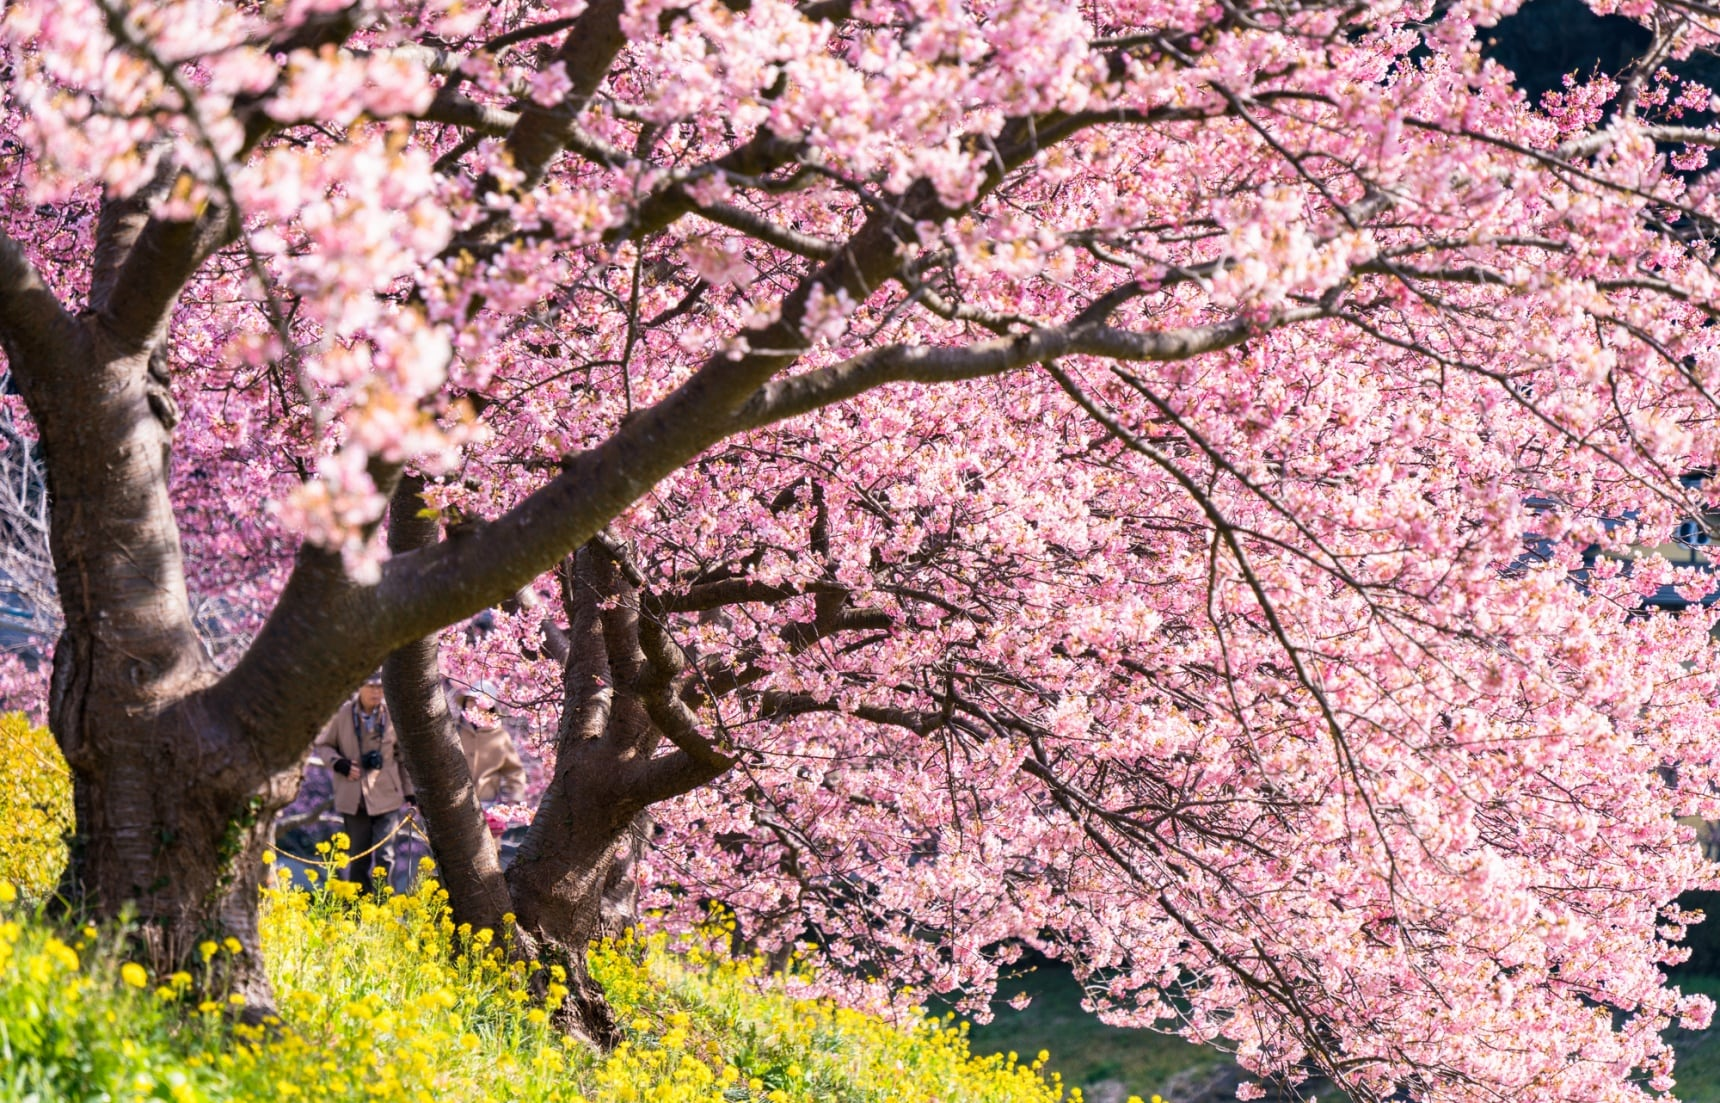 Capturing the Perfect Pink of Sakura